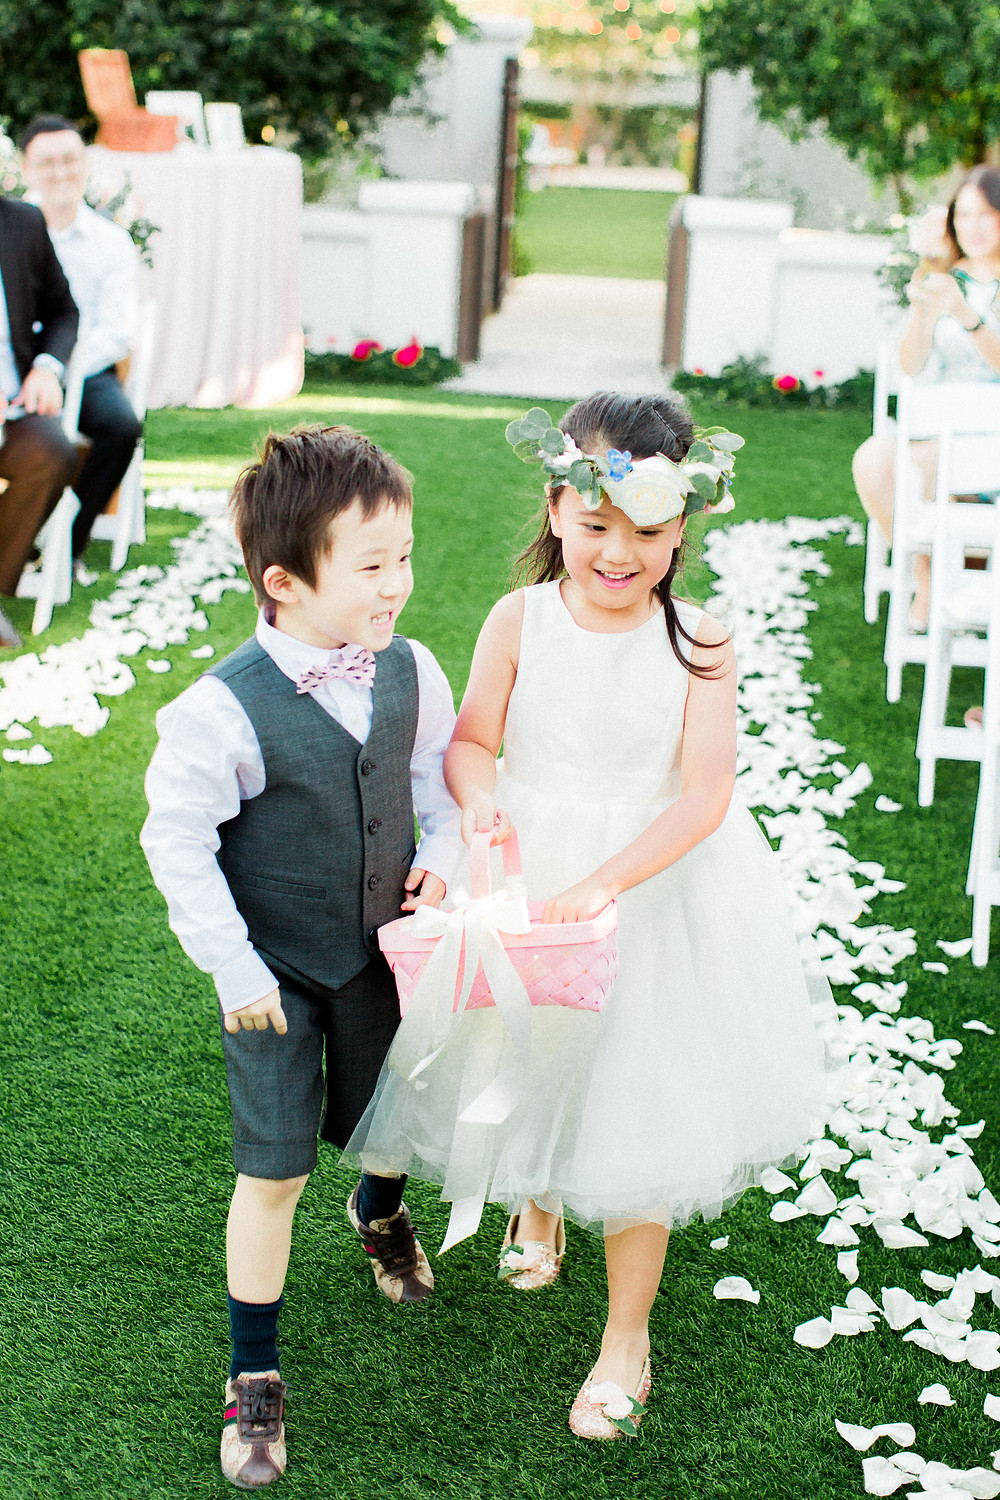 El Chorro Wedding, Traditional Chinese Wedding, Ceremony Details, Ring Bearer and Flower Girl